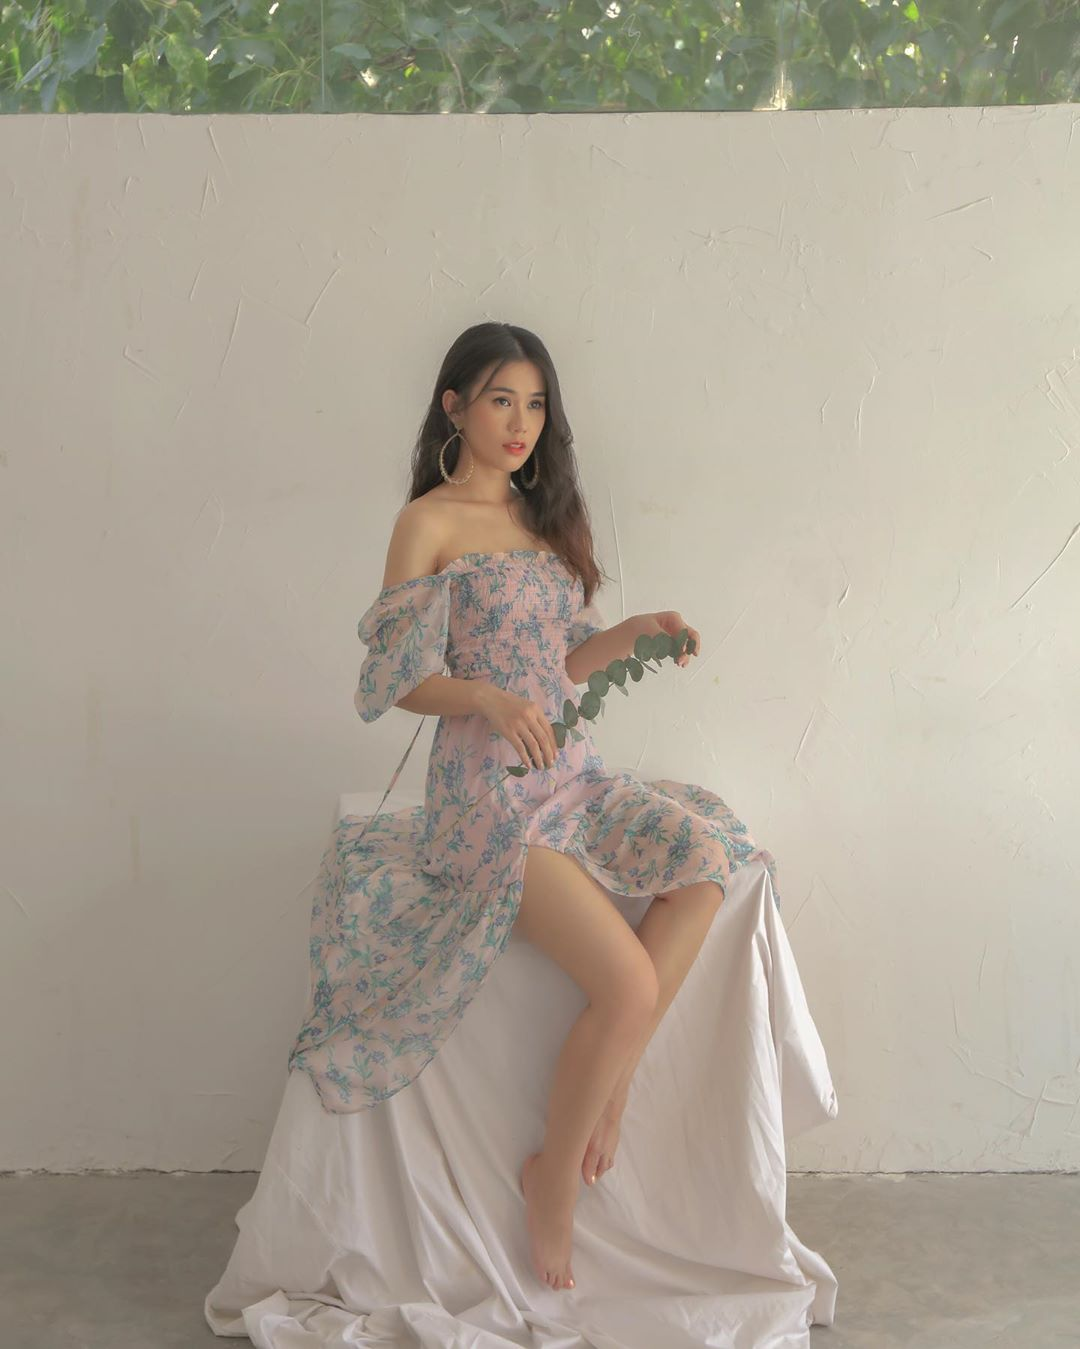 ngocthao official 117603544 329314511787964 4953779092532632858 n #NUDE Hot girl Ngọc Thảo